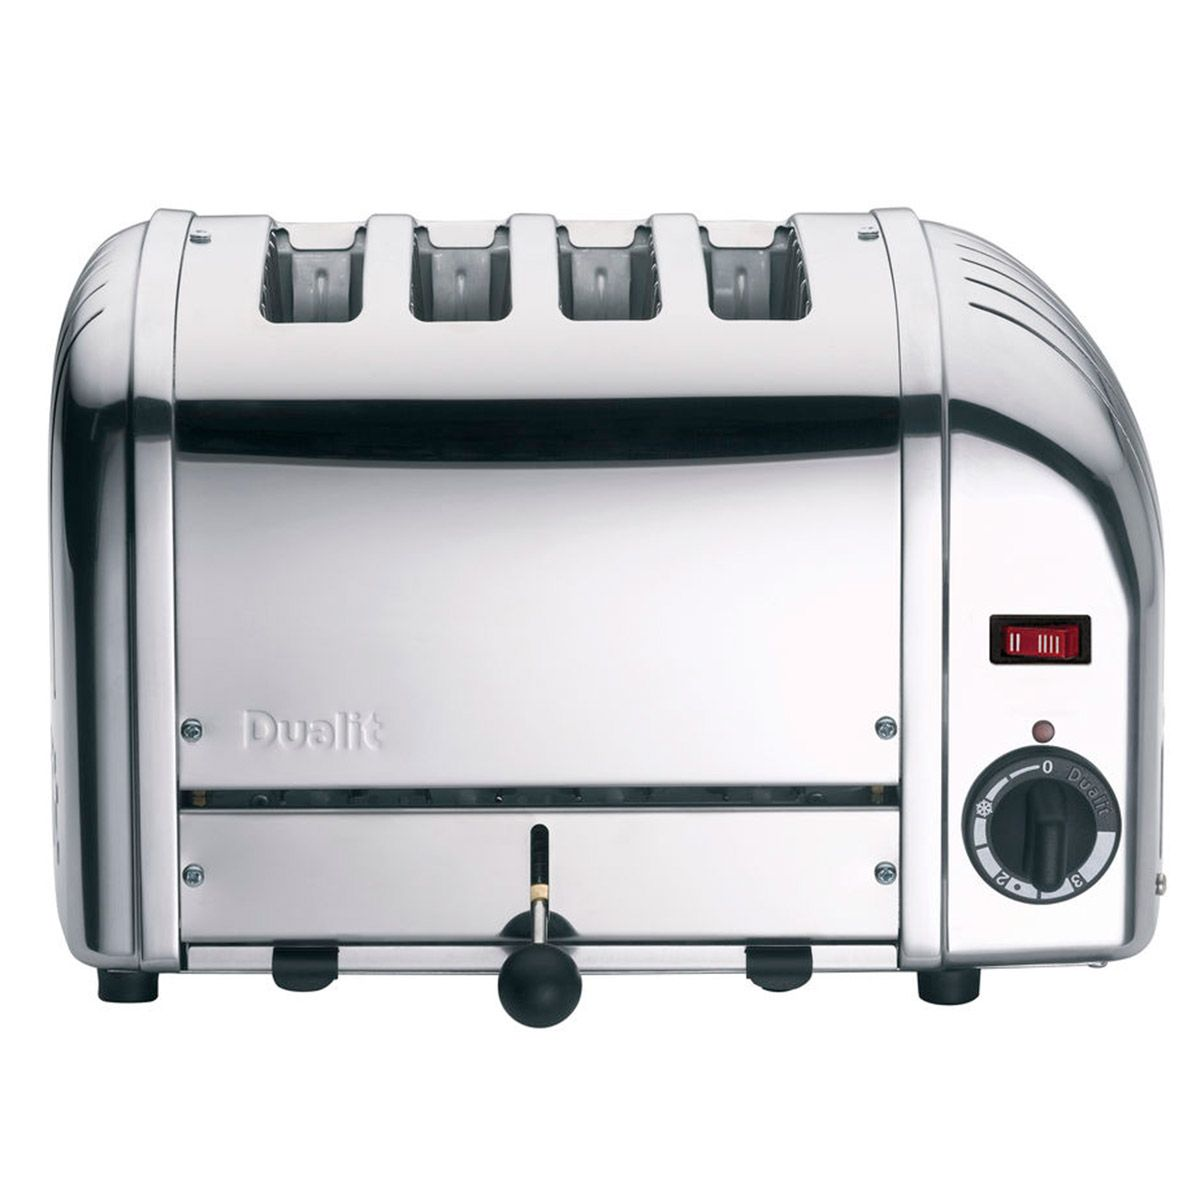 Dualit Toasters with Crumb Tray for sale | eBay